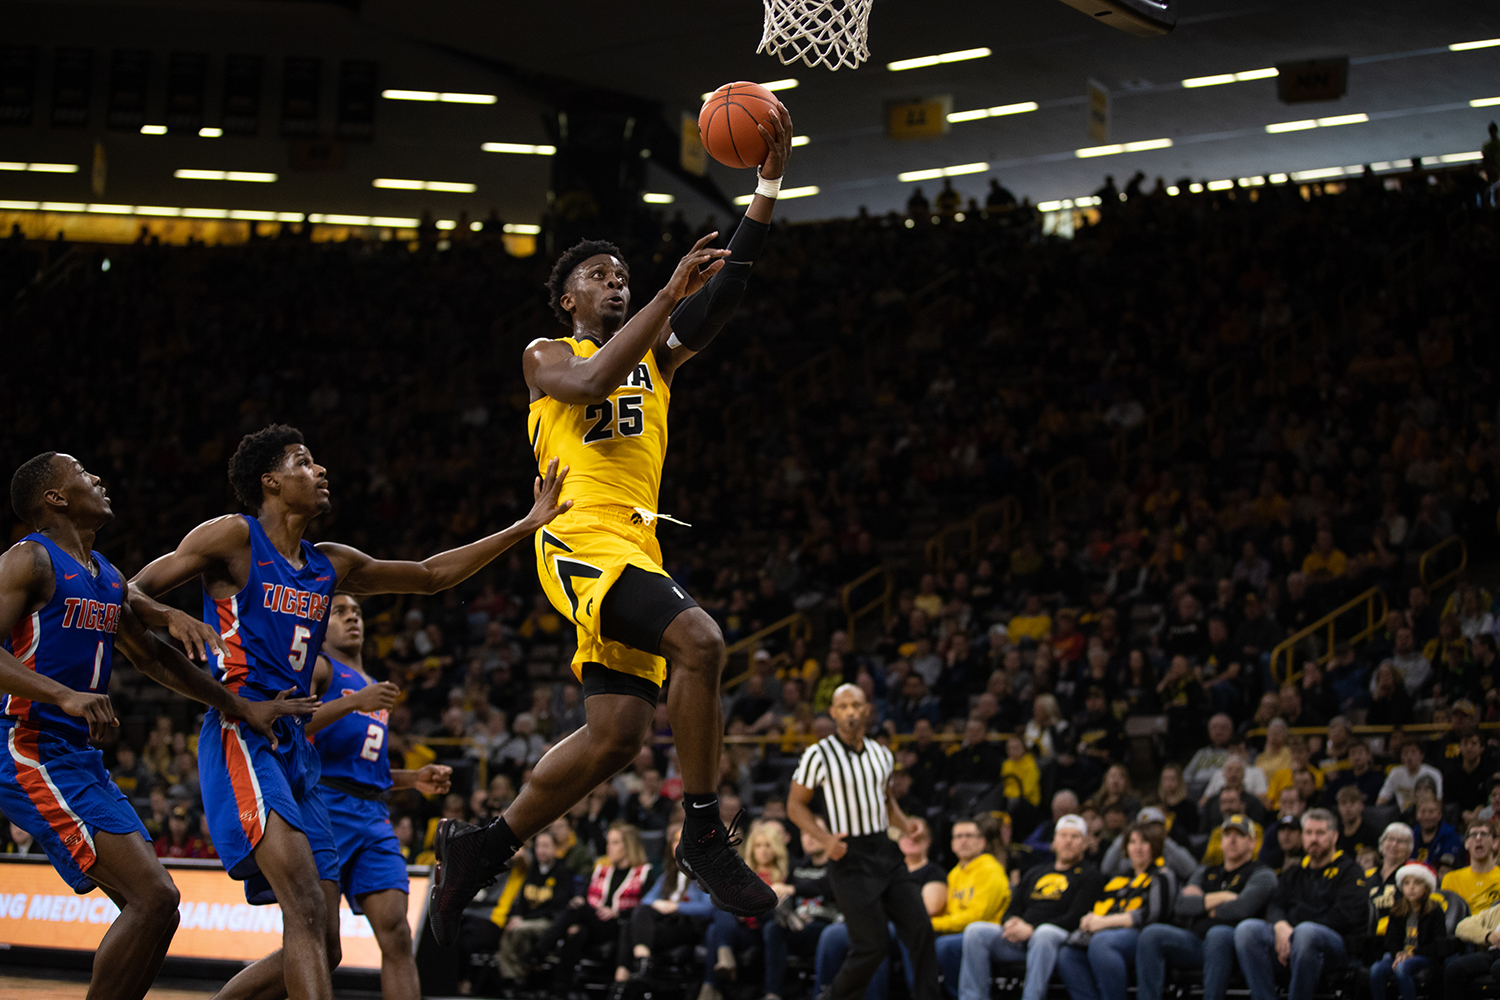 Iowa+forward+Tyler+Cook+%2325+does+a+lay+up+during+the+men%27s+basketball+game+against+Savannah+State+at+Carver-Hawkeye+Arena+on+Tuesday%2C+December+22%2C+2018.+The+Hawkeyes+defeated+the+Tigers+110-64.